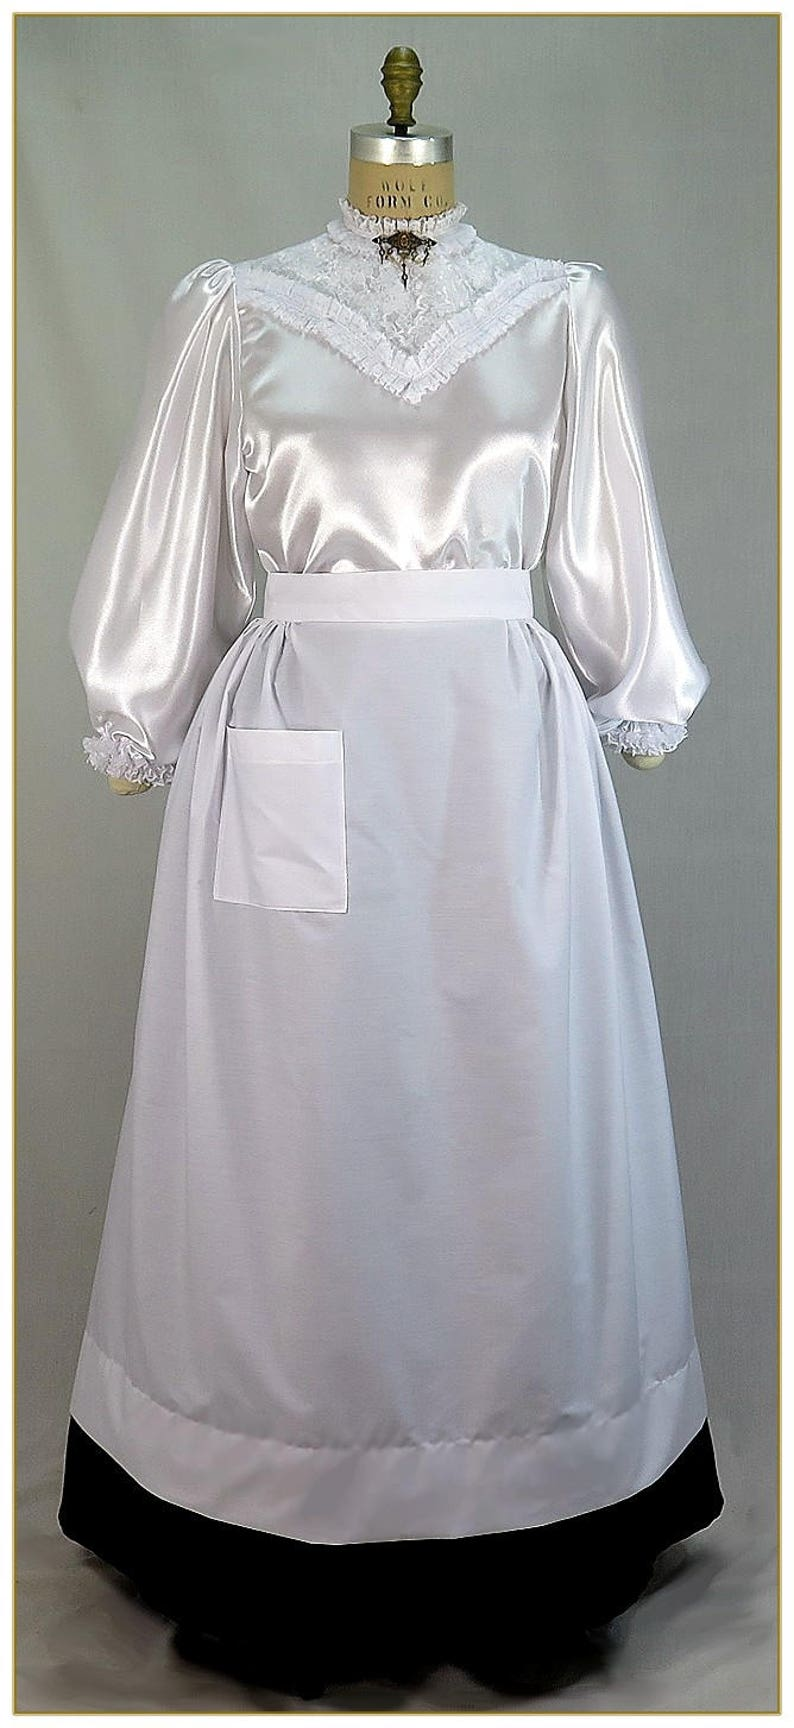 10 Things to Do with Vintage Aprons Victorian Maids Full Length Half Apron $39.00 AT vintagedancer.com